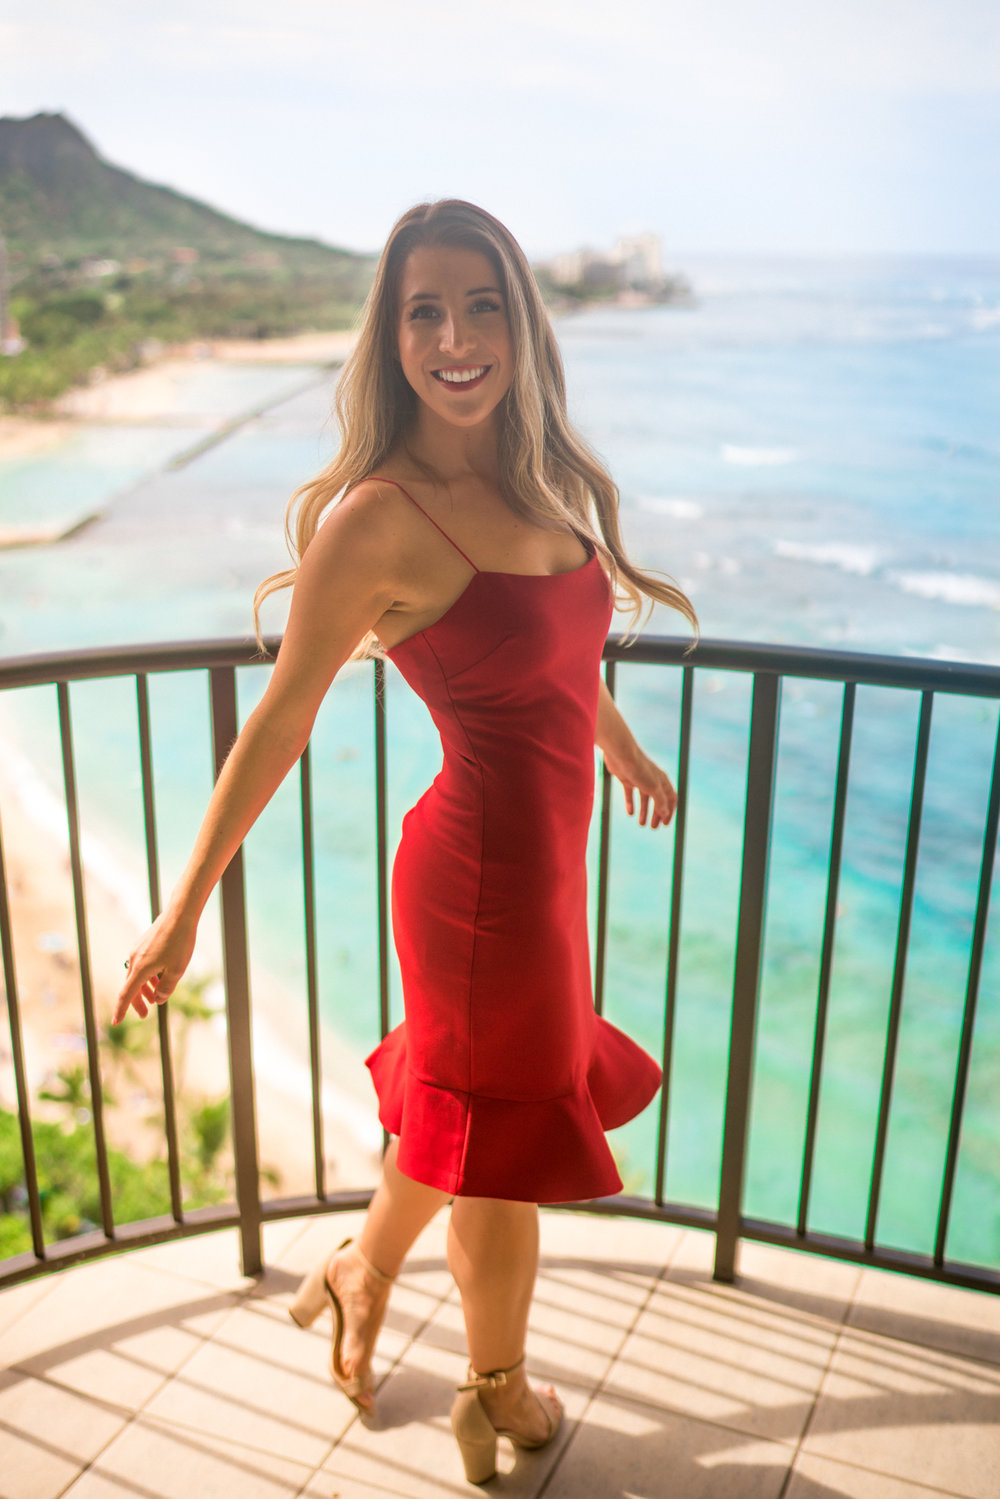 Likely Red Dress